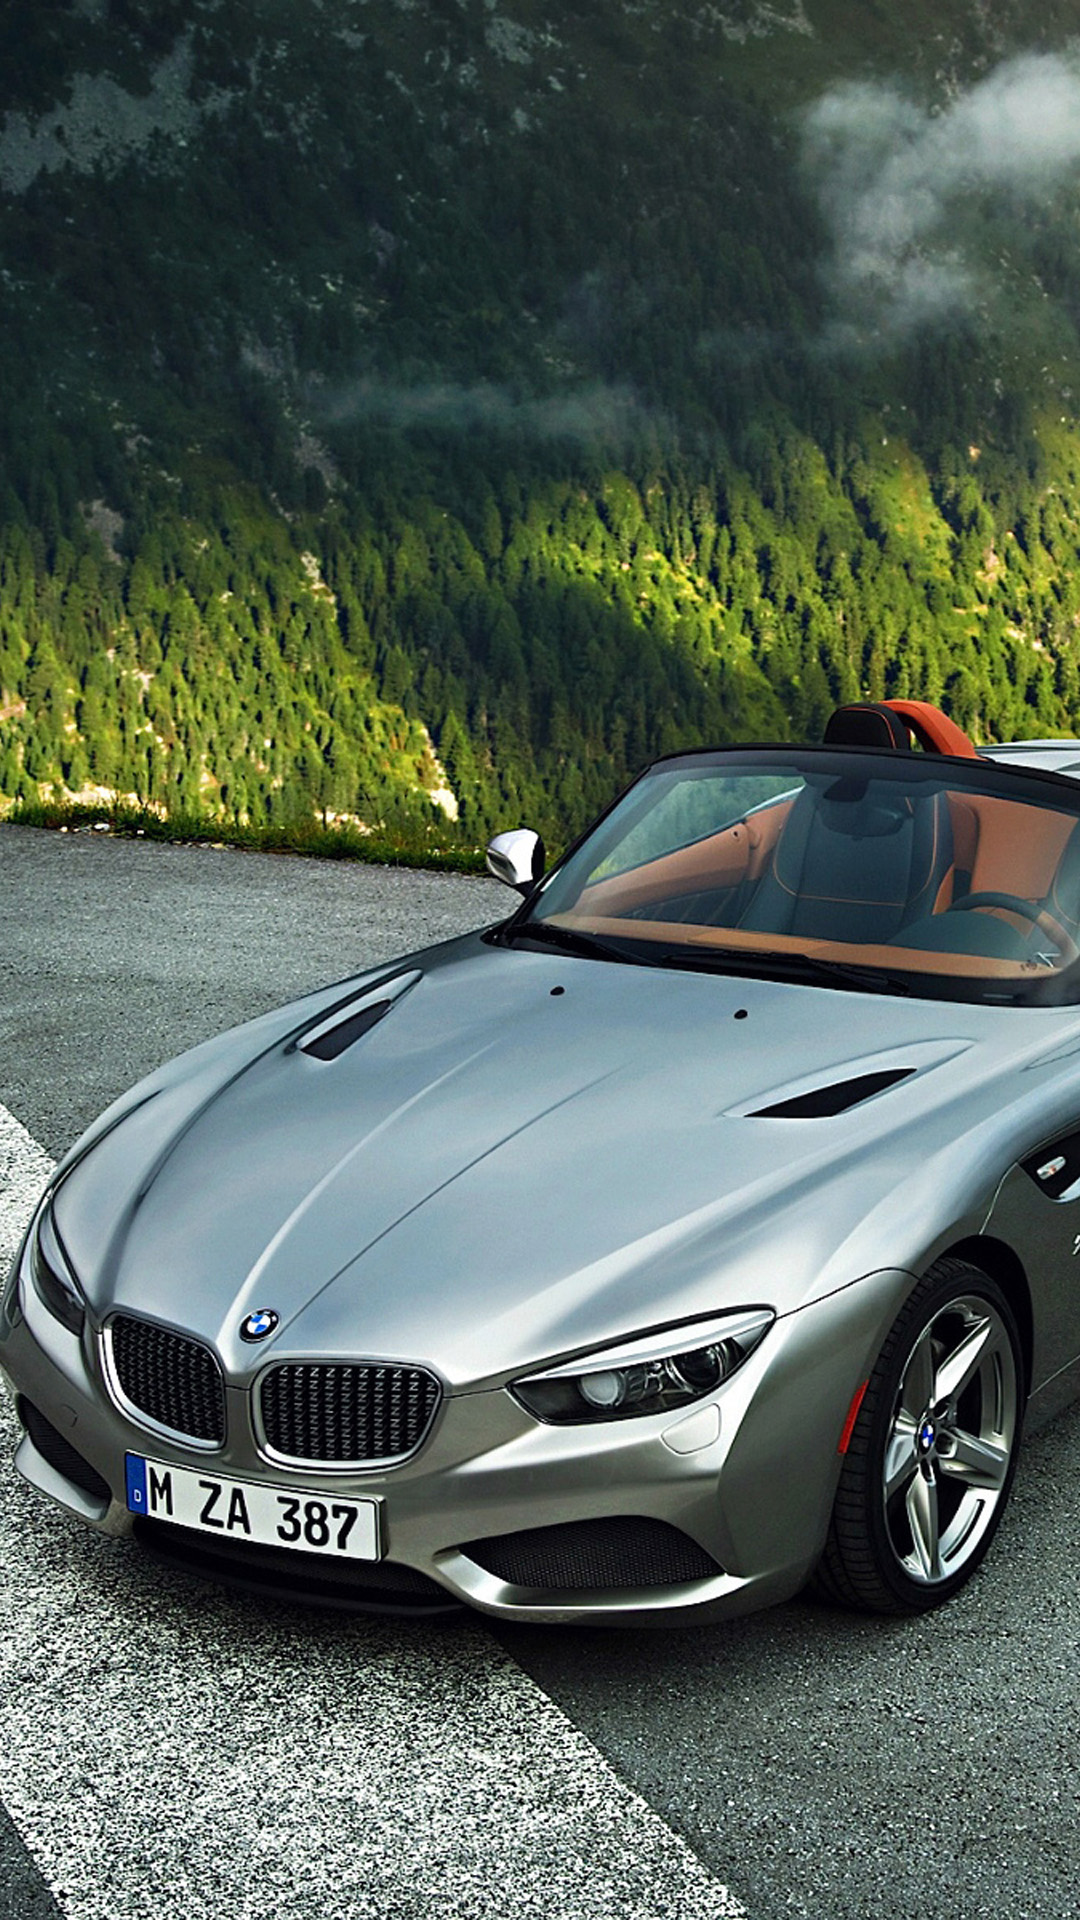 the latest bmw sports cars